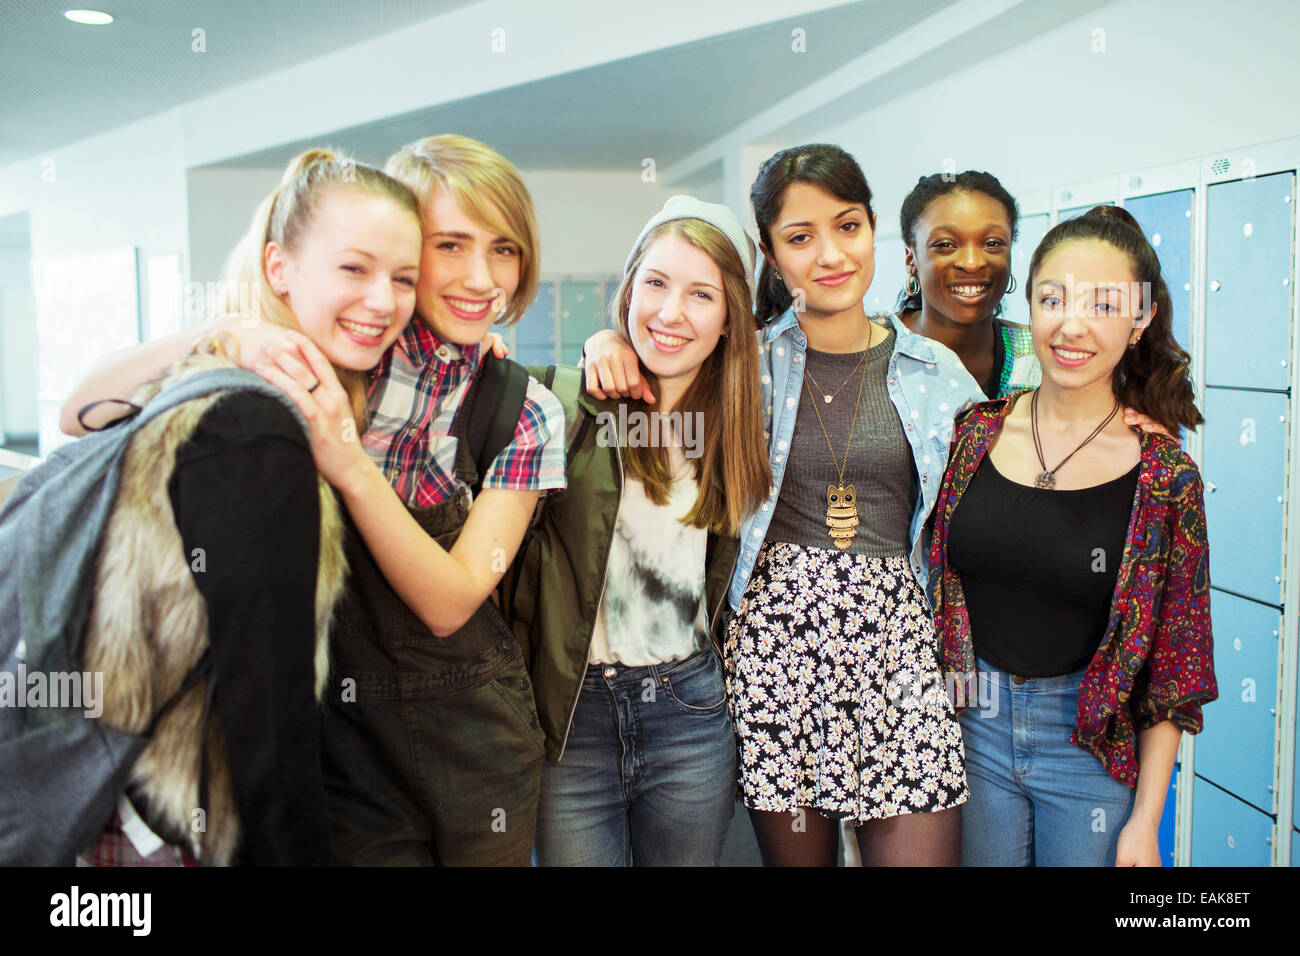 Group portrait of cheerful female students standing in locker room Stock Photo